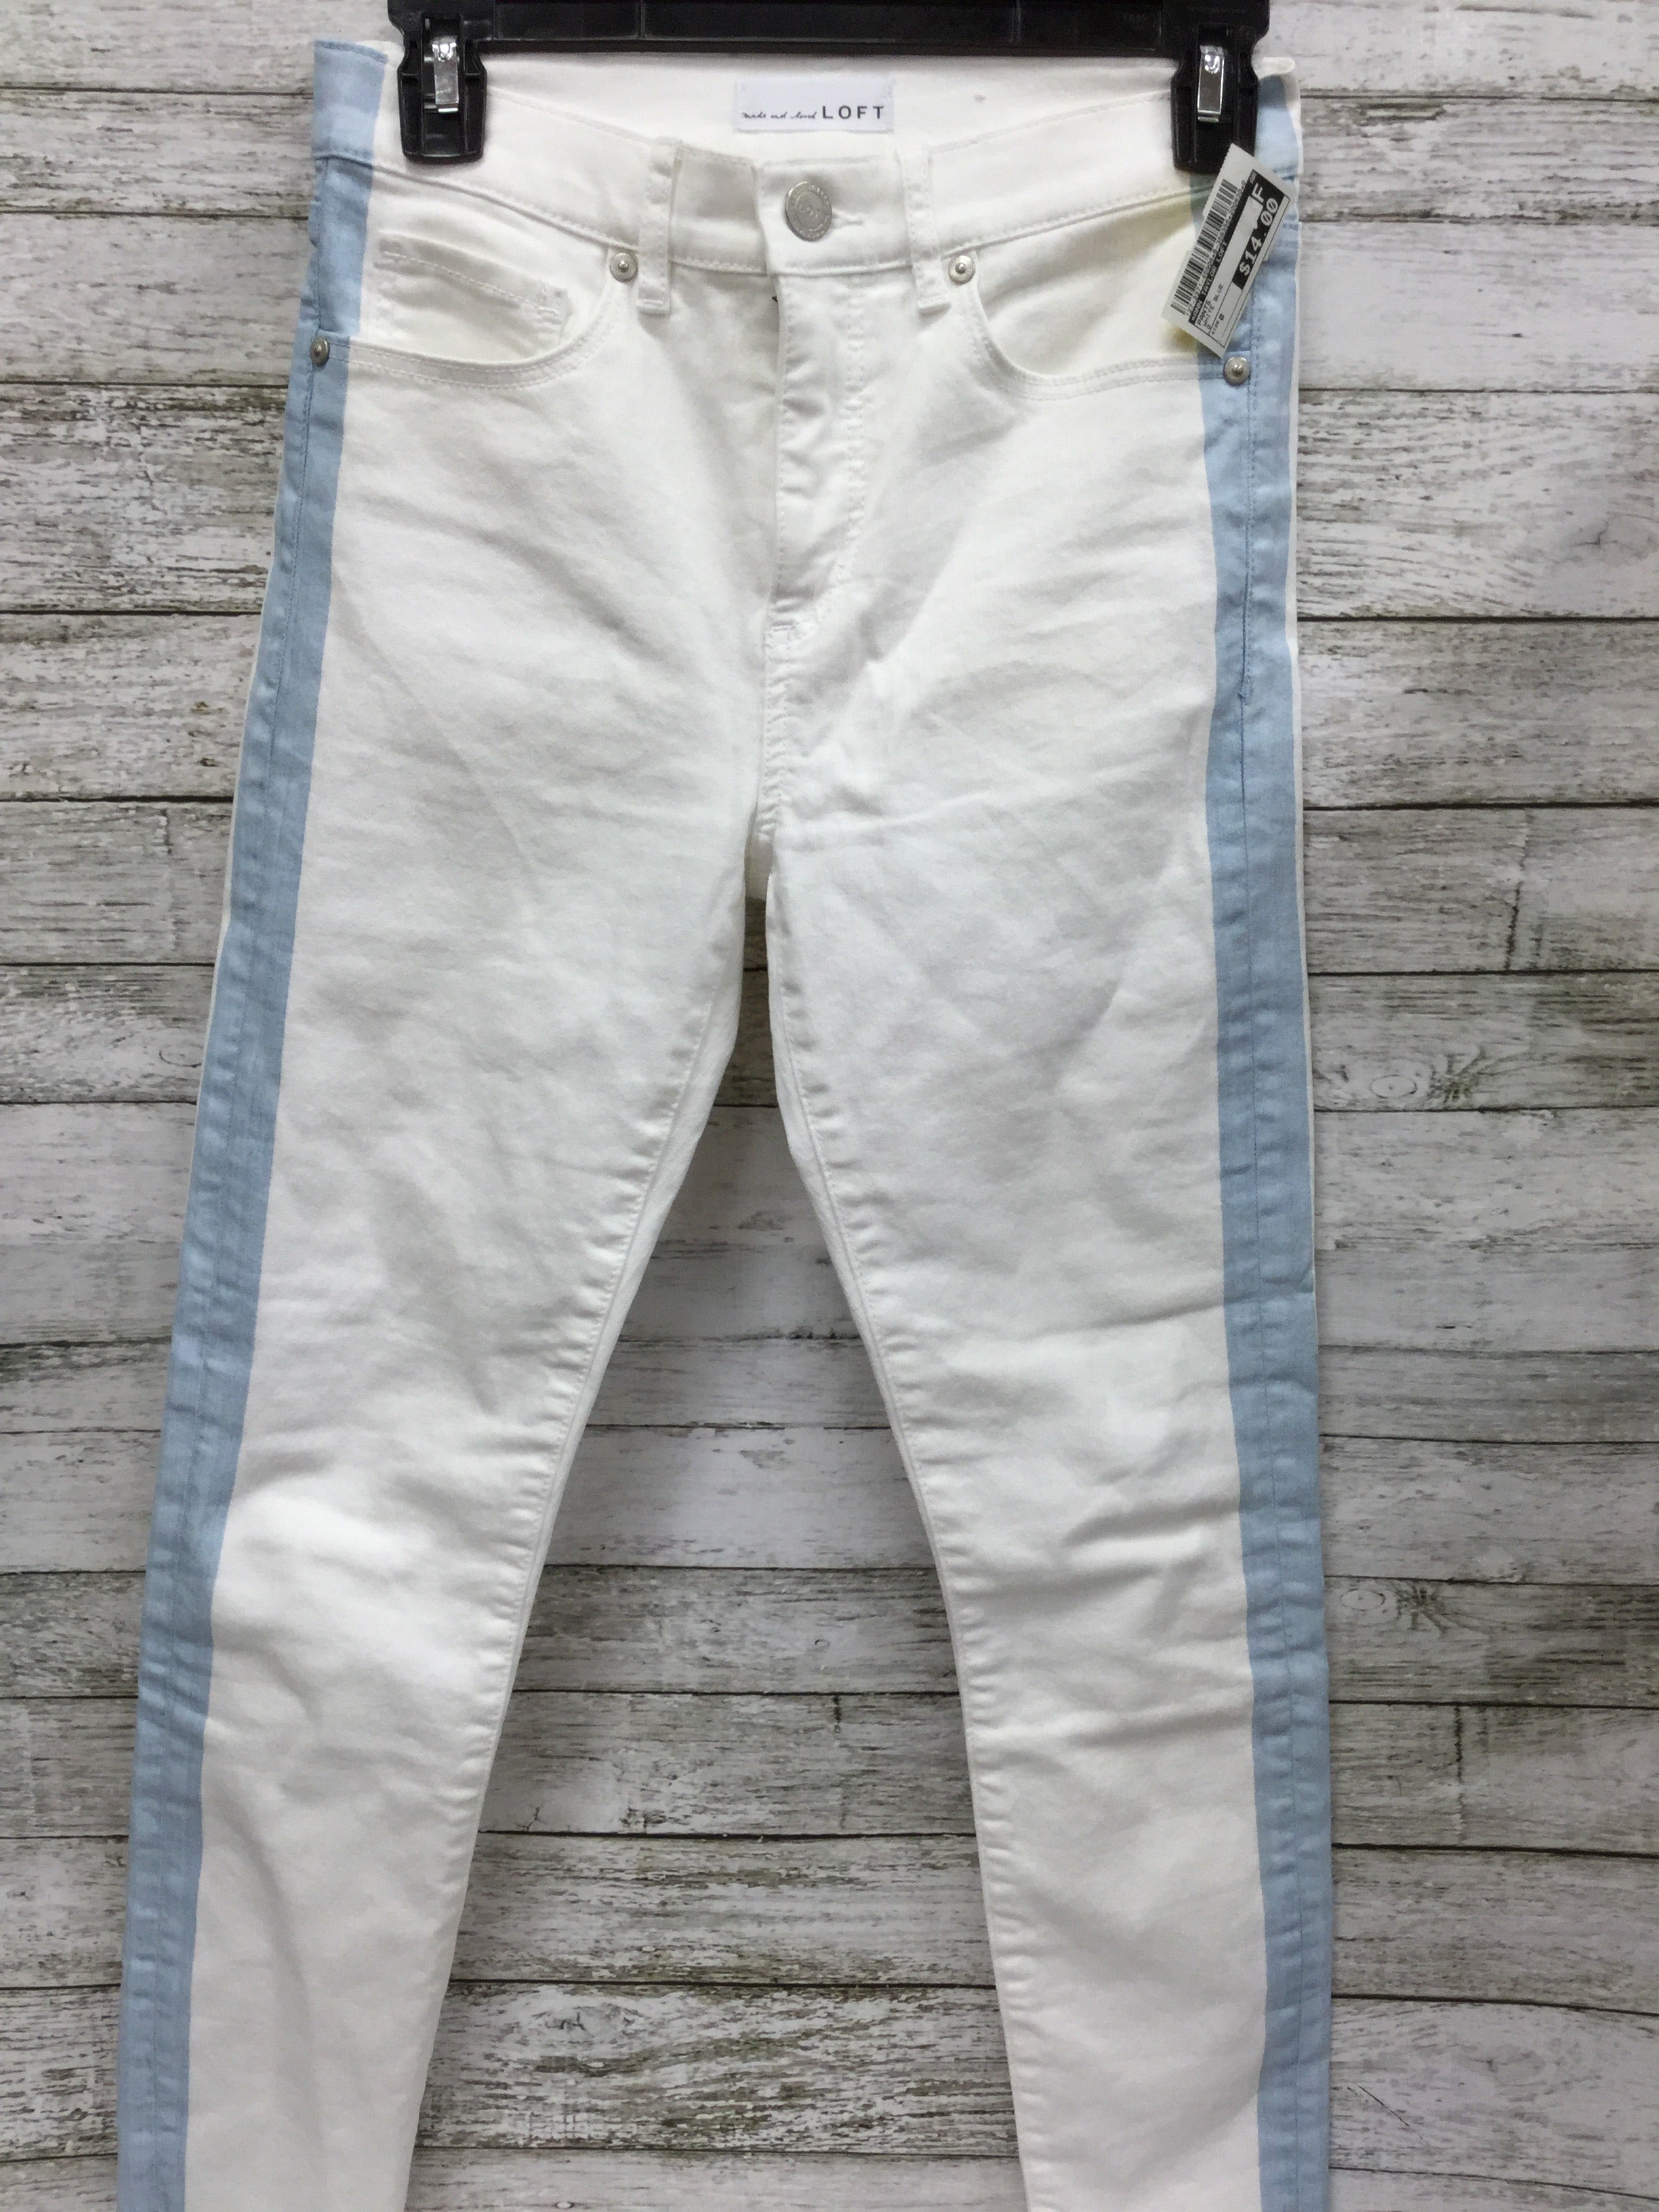 Primary Photo - BRAND: ANN TAYLOR LOFT <BR>STYLE: PANTS <BR>COLOR: WHITE BLUE <BR>SIZE: 0 <BR>SKU: 127-3371-45906